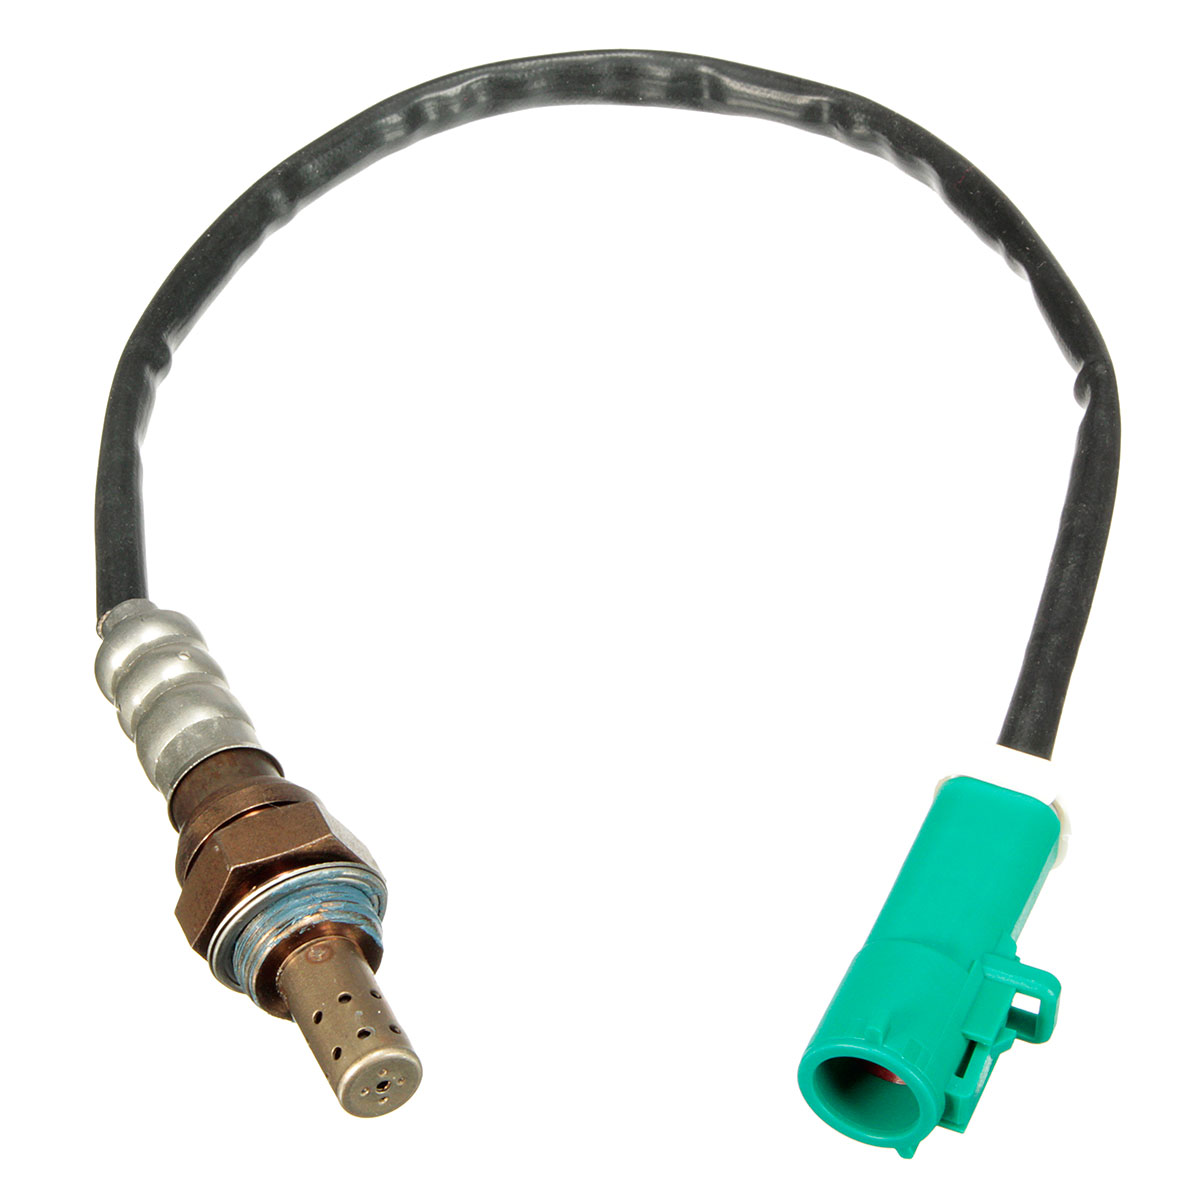 O2 Lambda Oxygen Sensor For Ford Fiesta MK1 Connect Focus Jaguar 98AB 9F472 BB